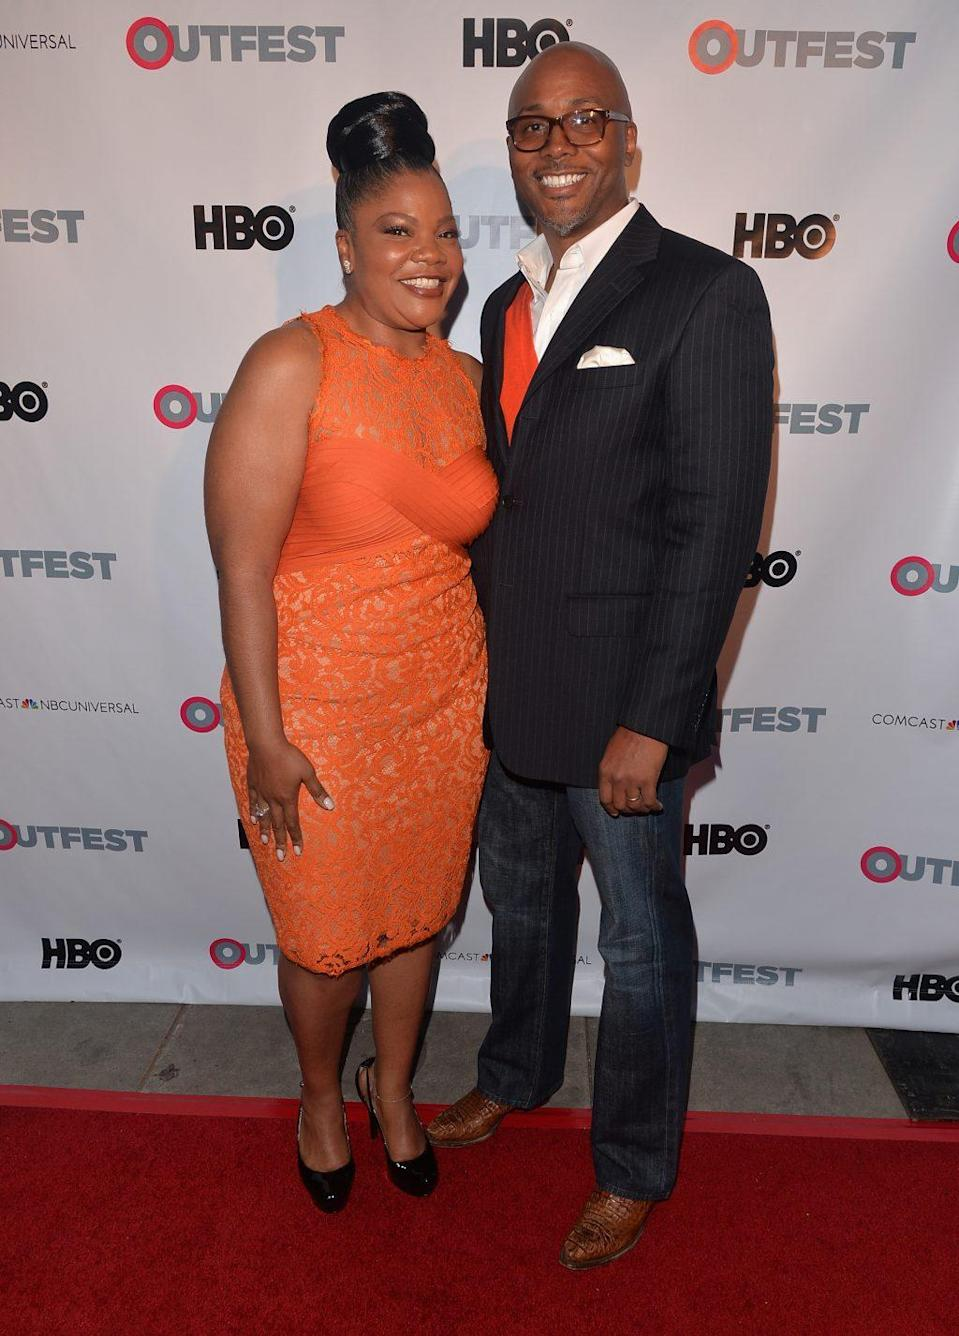 """Actress/executive produce Mo'Nique and executive producer Sidney Hicks arrive to the Outfest Fusion LGBT People of Color Film Fetival Opening Night Screening of """"Blackbird"""" at the Egyptian Theatre on March 14, 2014 in Hollywood, California. (Photo by Alberto E. Rodriguez/Getty Images)"""